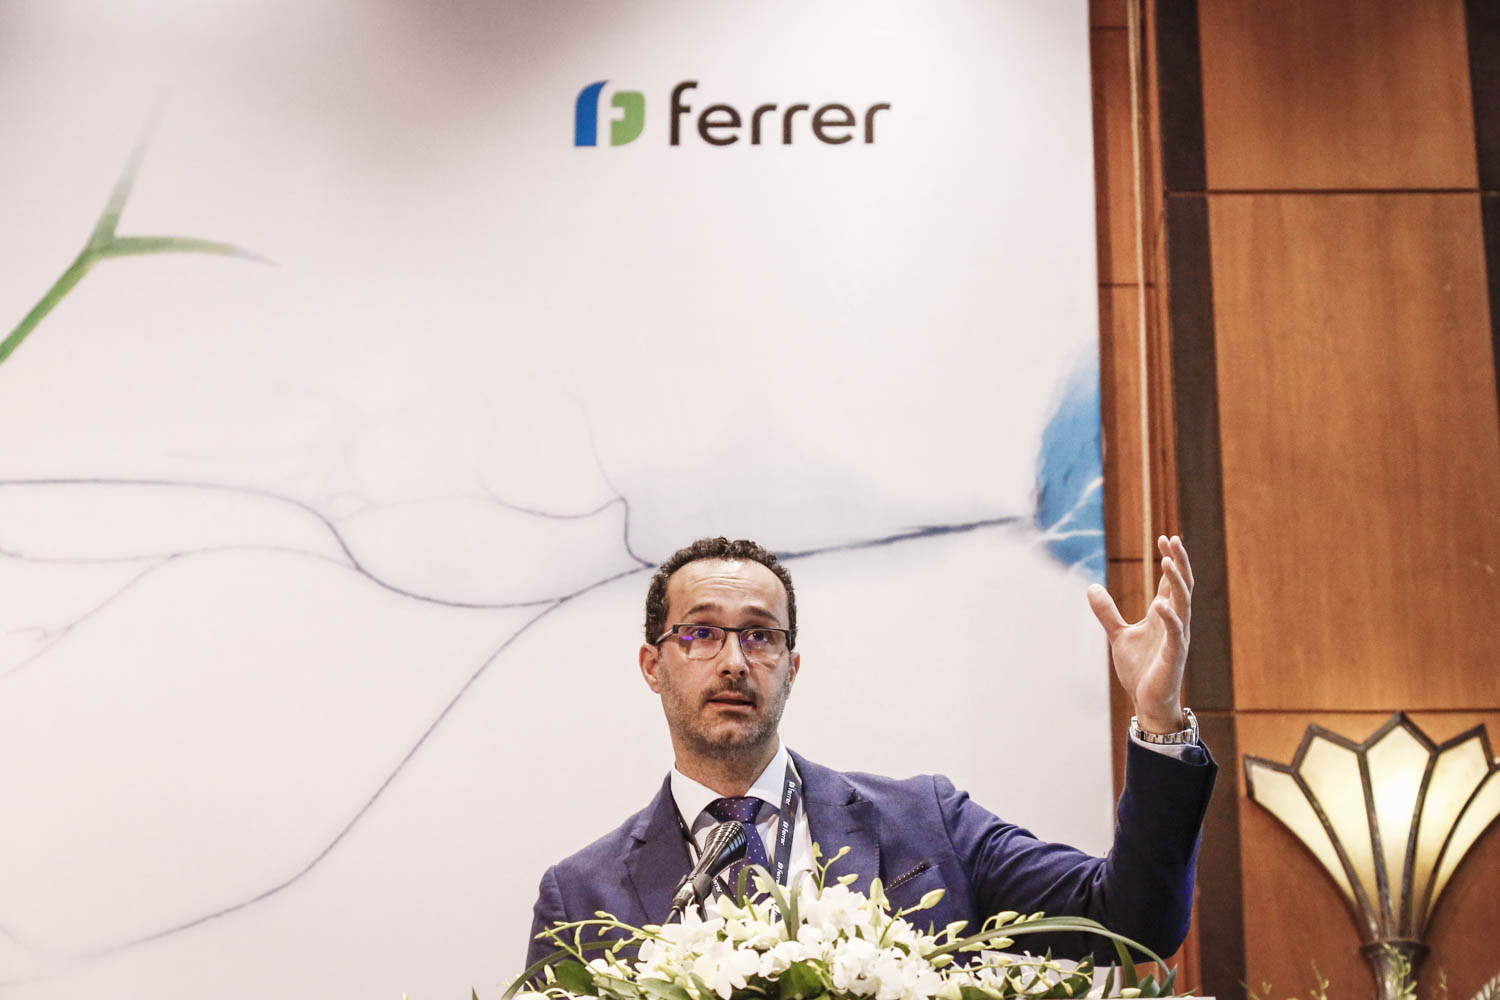 Convention for Ferrer Pharmaceuticals | Hanoi Event Photographer | Francis Roux